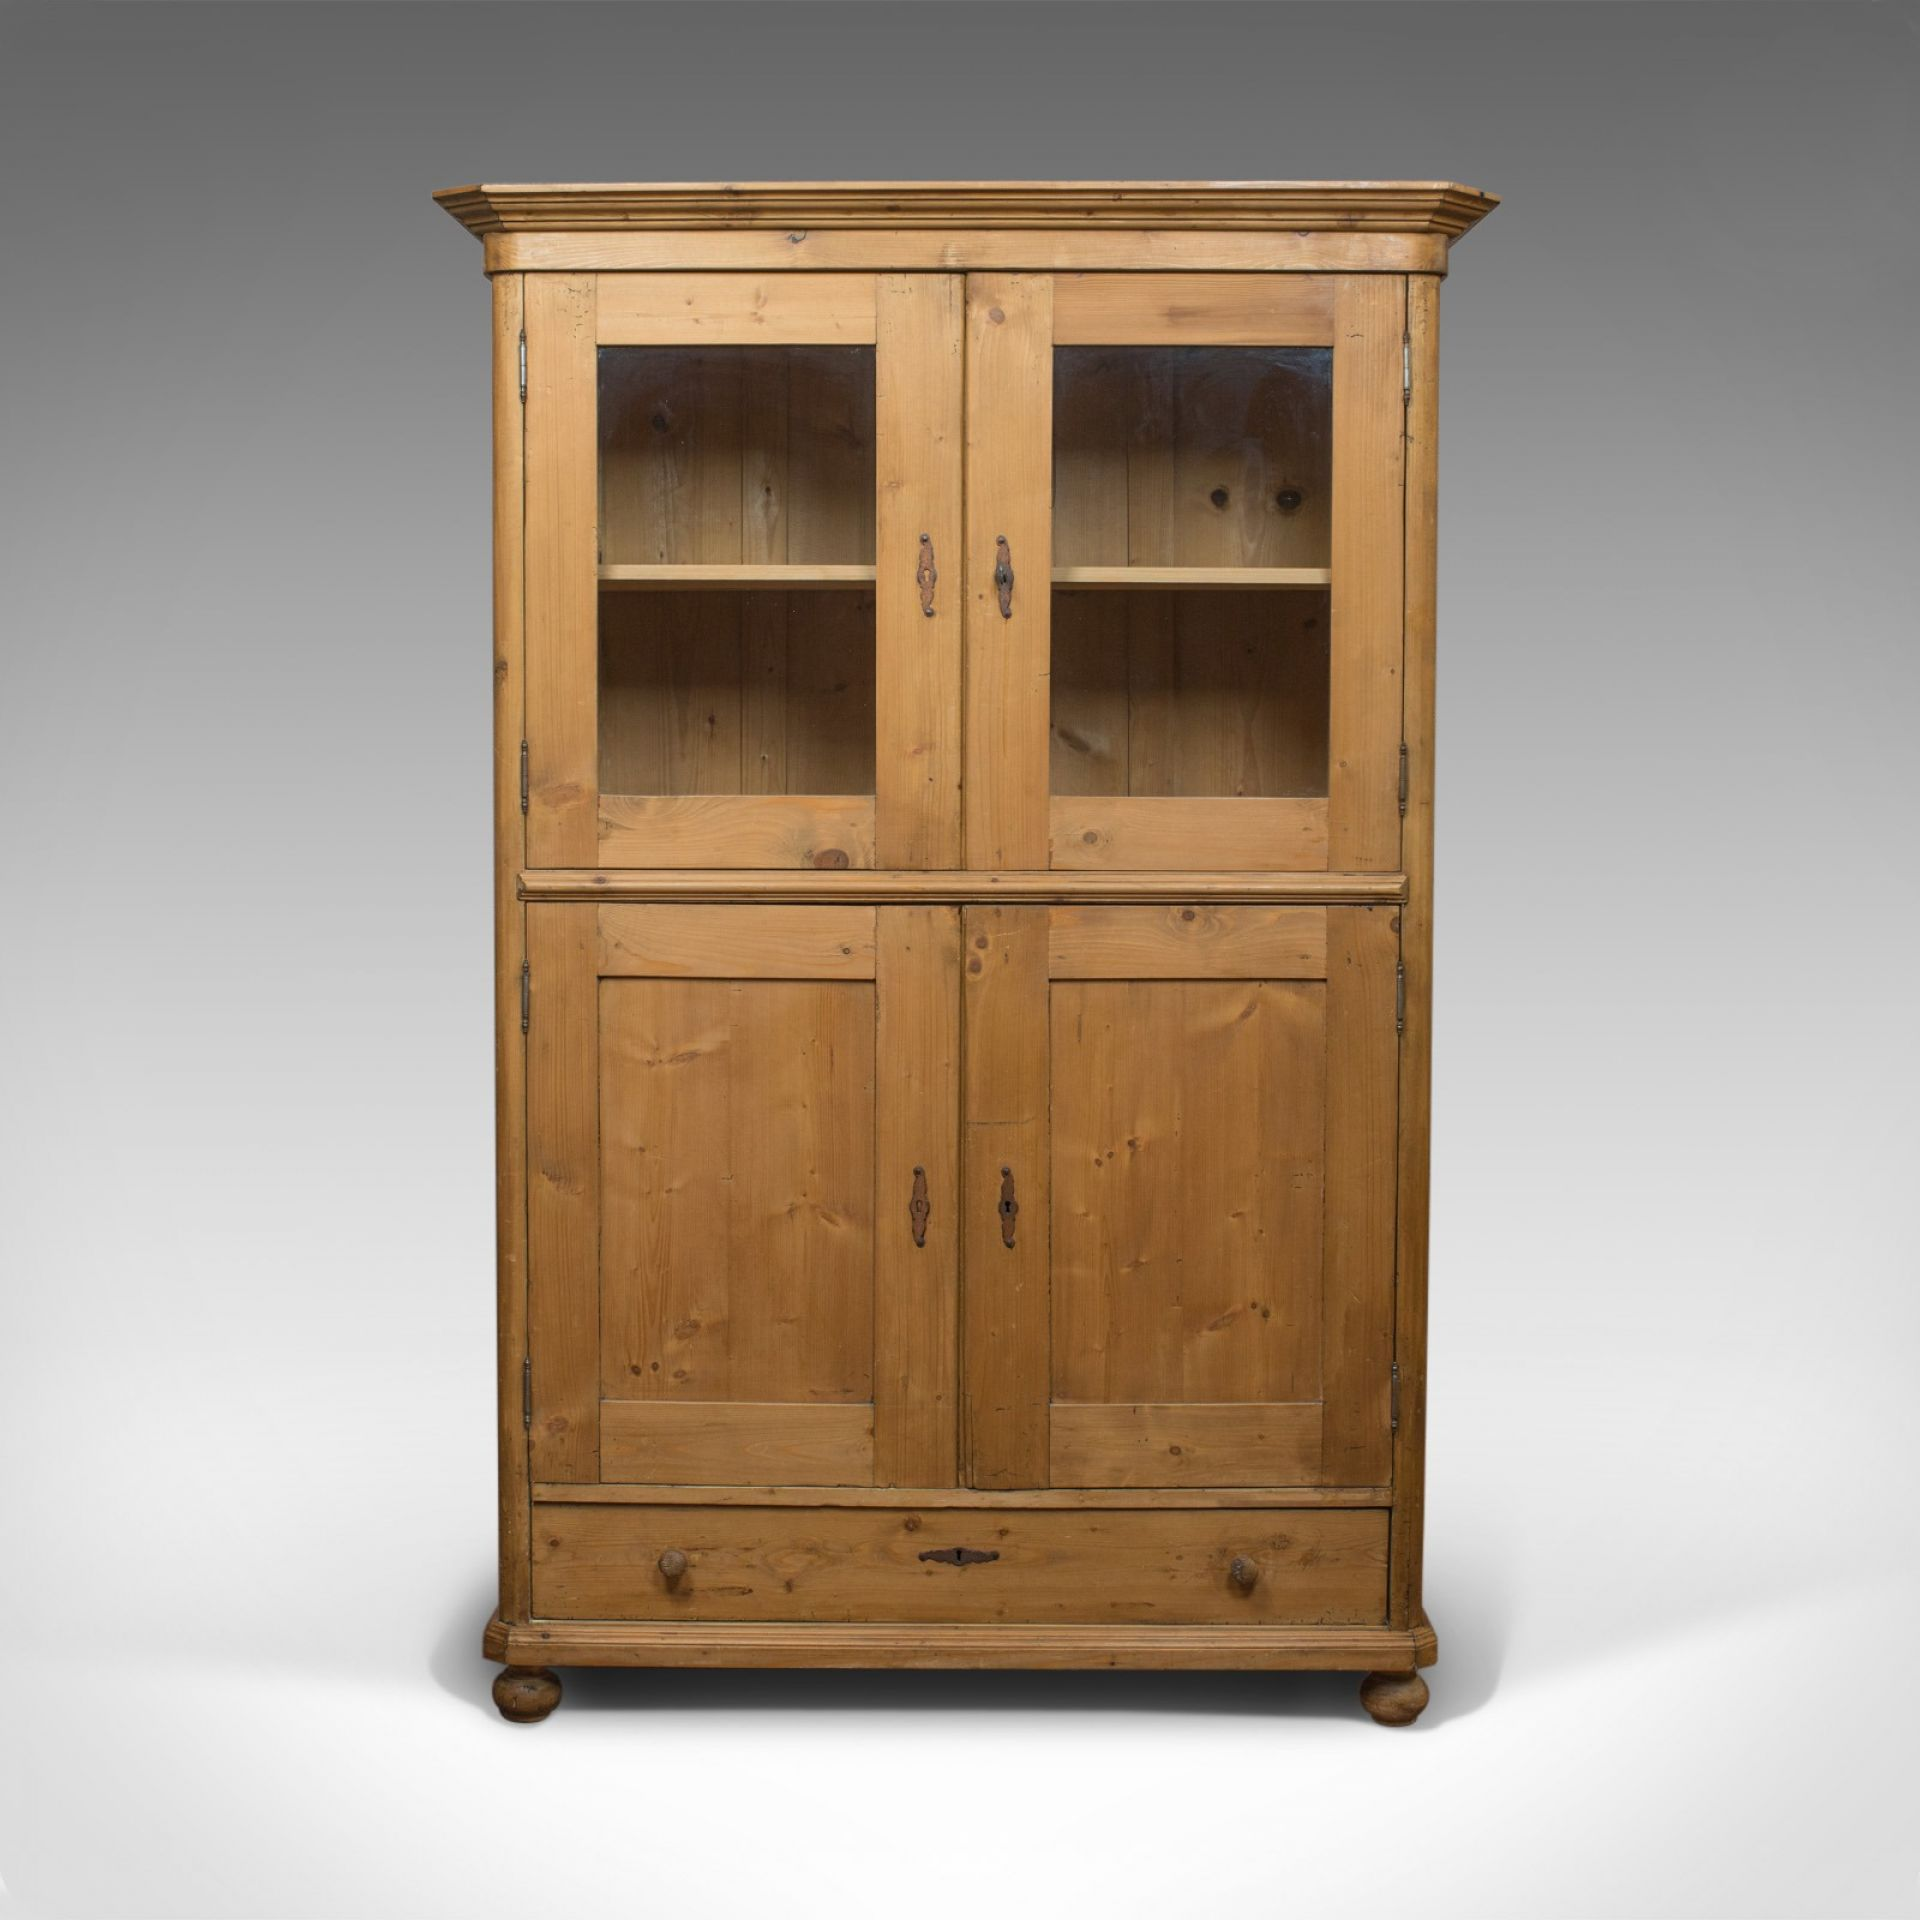 Vintage Two Door Bookcase, Cabinet, French, Pine, Mid 20th Century, Circa 1960